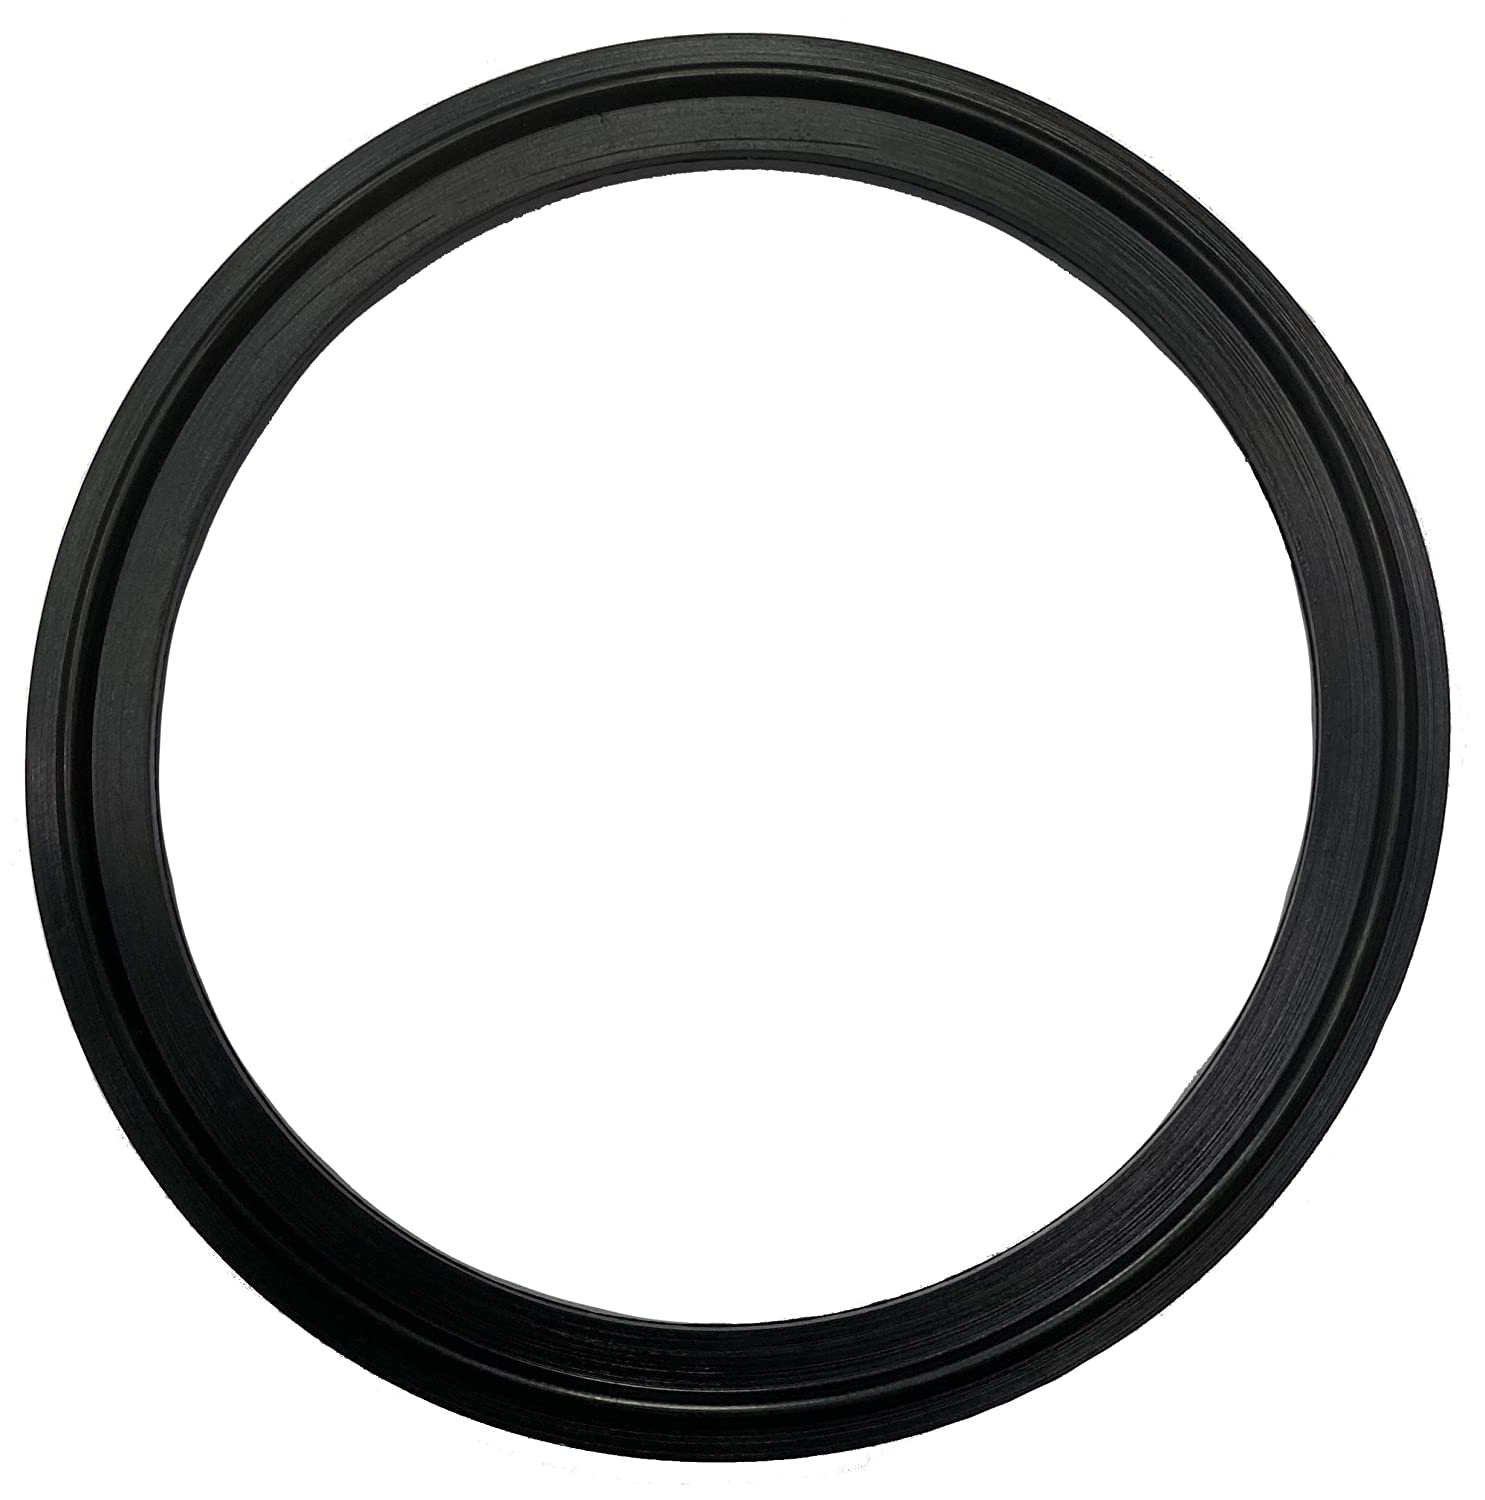 """DR-COMPONENT 4"""" Sanitary Standard Tri-Clamp Gaskets (Pack of 2), Black FKM-Viton"""